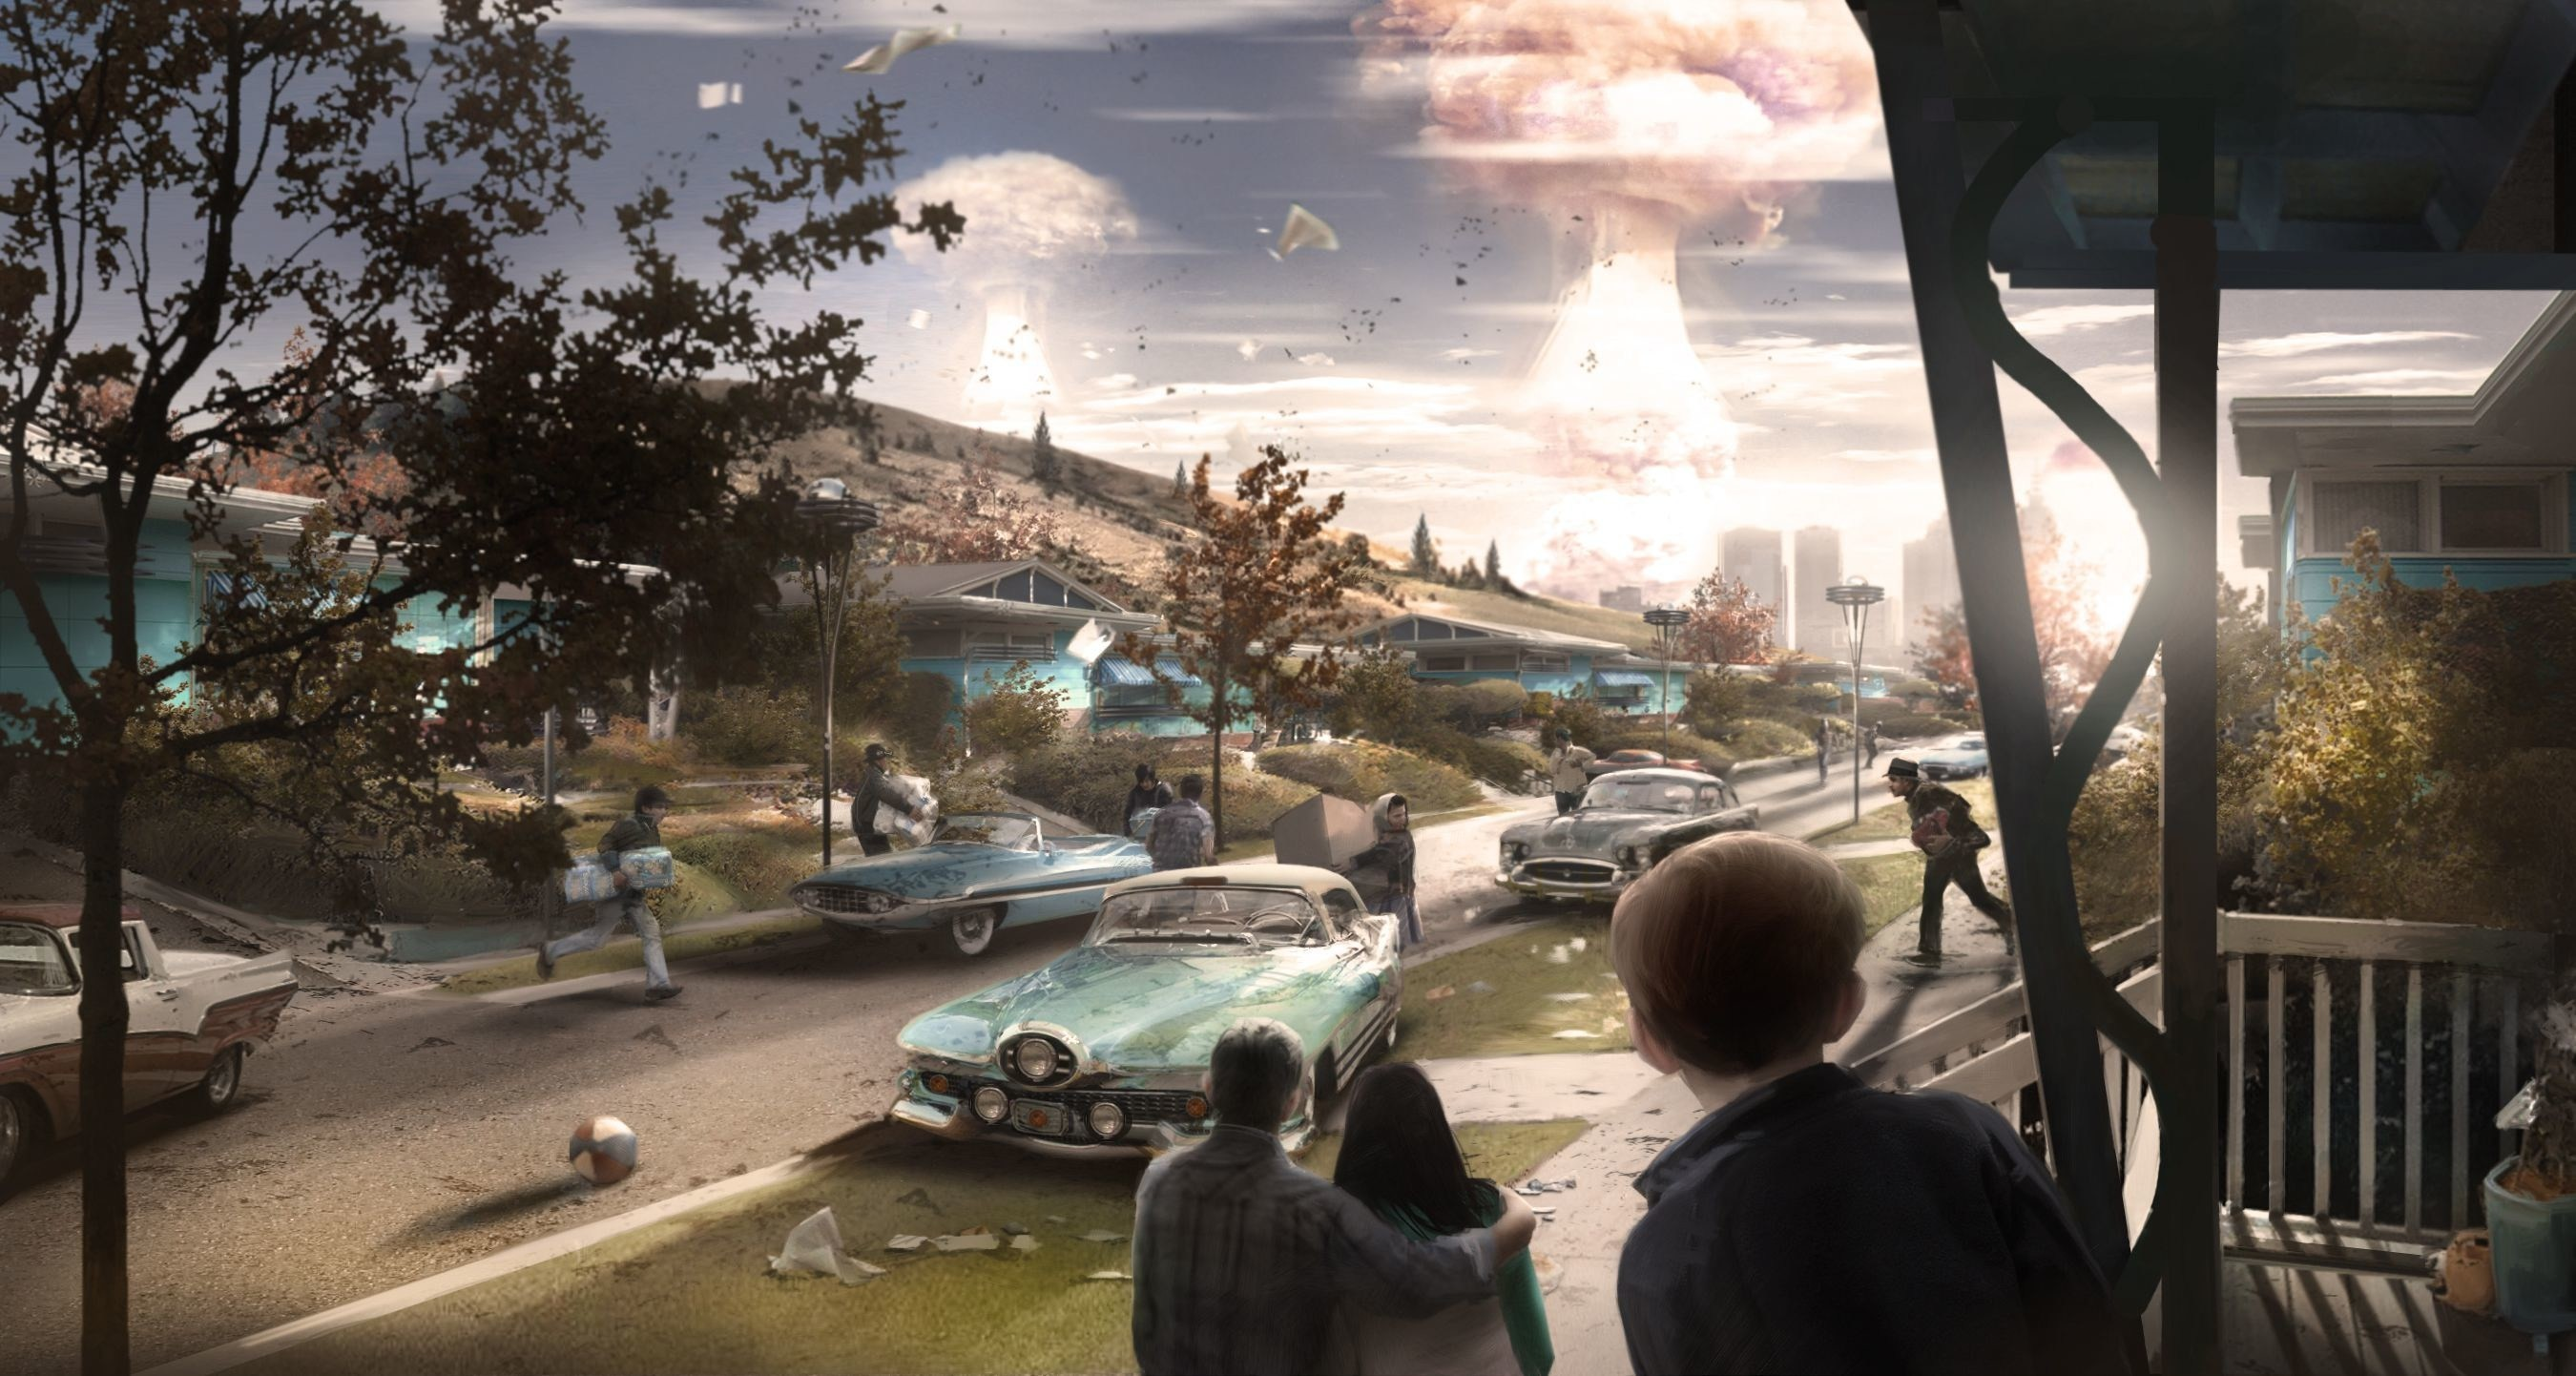 images?q=tbn:ANd9GcQh_l3eQ5xwiPy07kGEXjmjgmBKBRB7H2mRxCGhv1tFWg5c_mWT Awesome Concept Art Fallout 4 Diamond City @koolmobiles.com